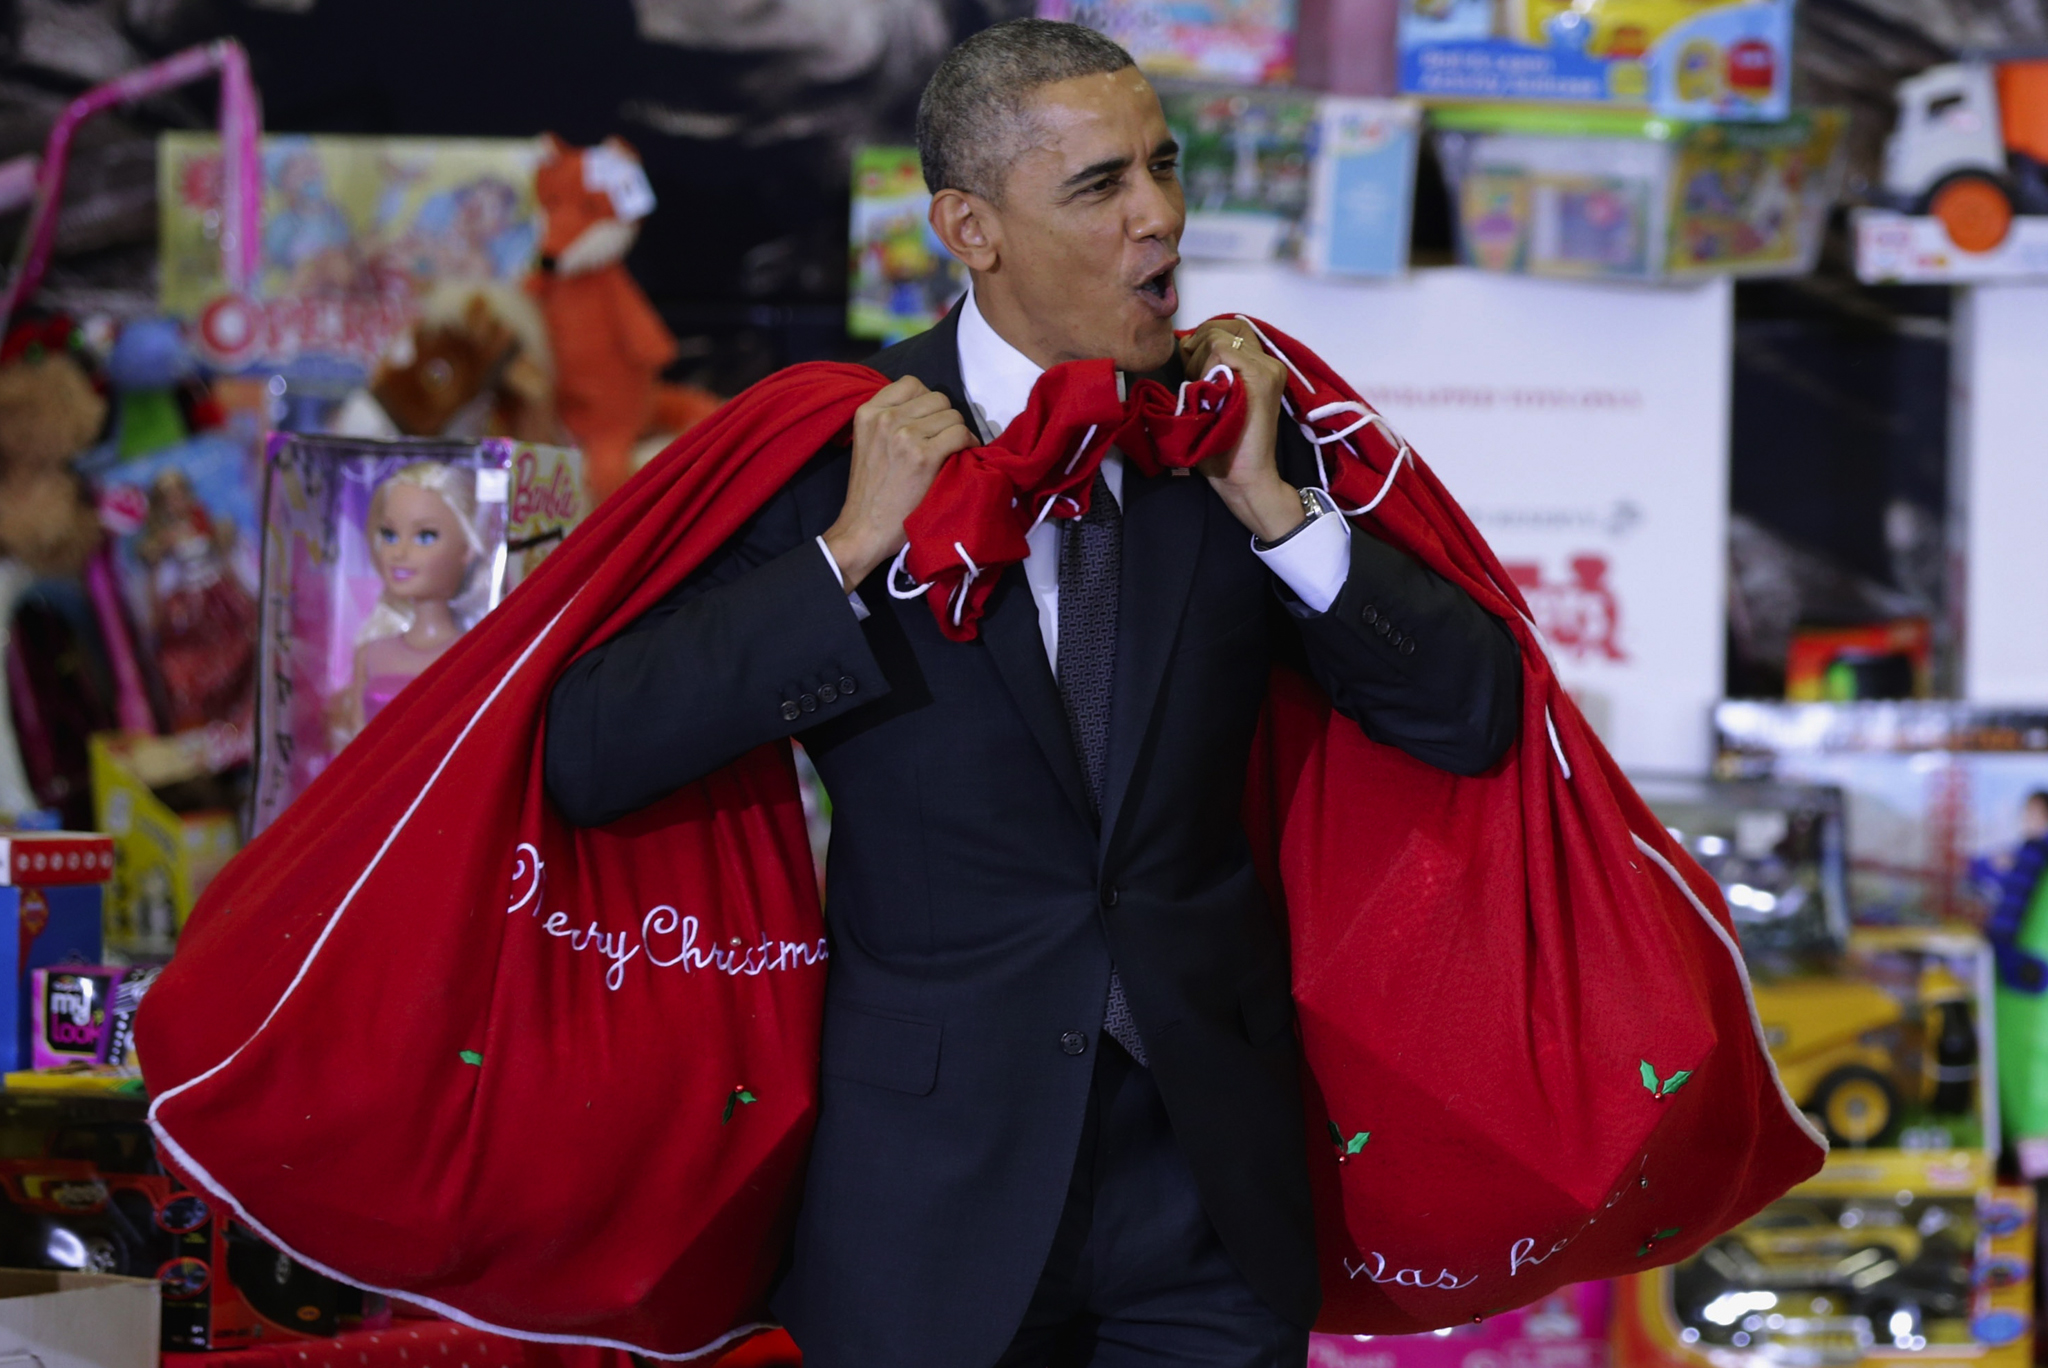 U.S. President Barack Obama, with bags slung over his shoulders, delivers toys and gifts donated by Executive Office of the President staff to the Marine Corps Reserve Toys for Tots Program at Joint Base Anacostia-Bolling.